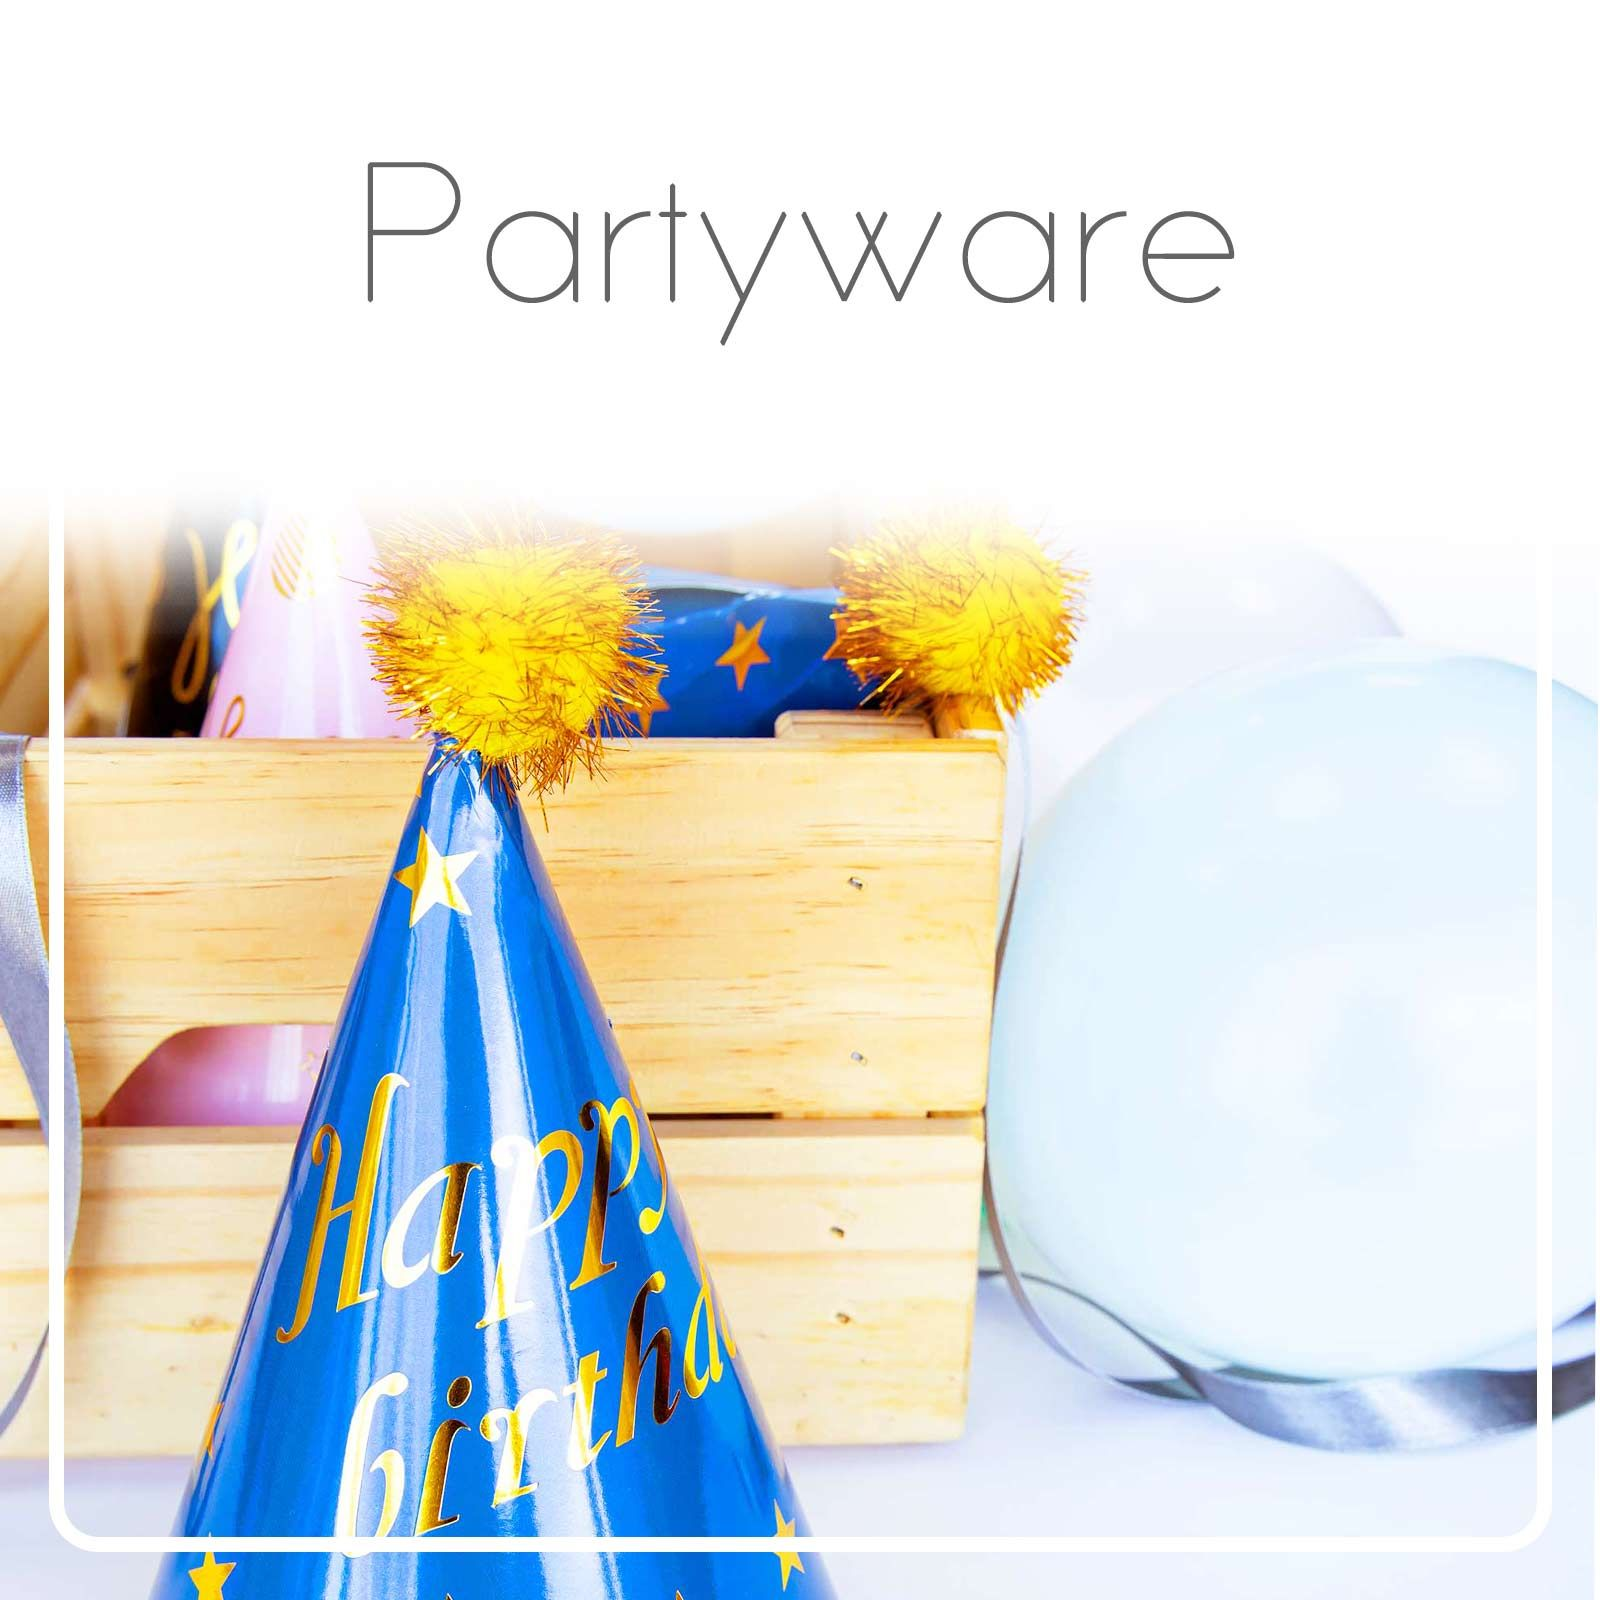 Partyware - The party supplies and party tableware.